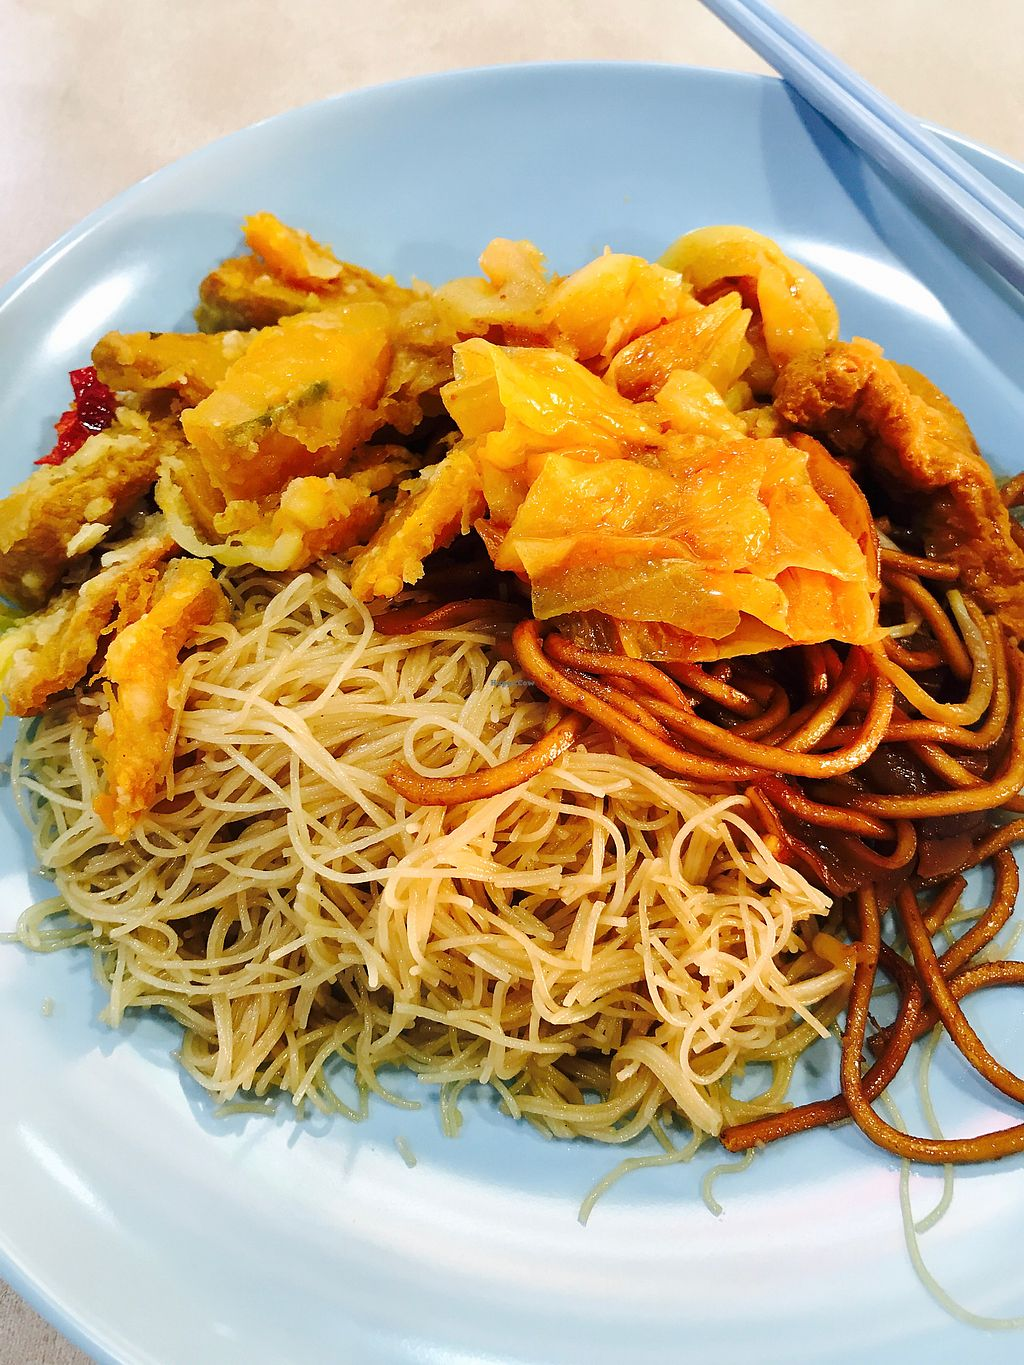 """Photo of Econ Vegetarian Delights  by <a href=""""/members/profile/Happy16"""">Happy16</a> <br/>Mee and Mee Hoon <br/> June 29, 2017  - <a href='/contact/abuse/image/91202/274572'>Report</a>"""